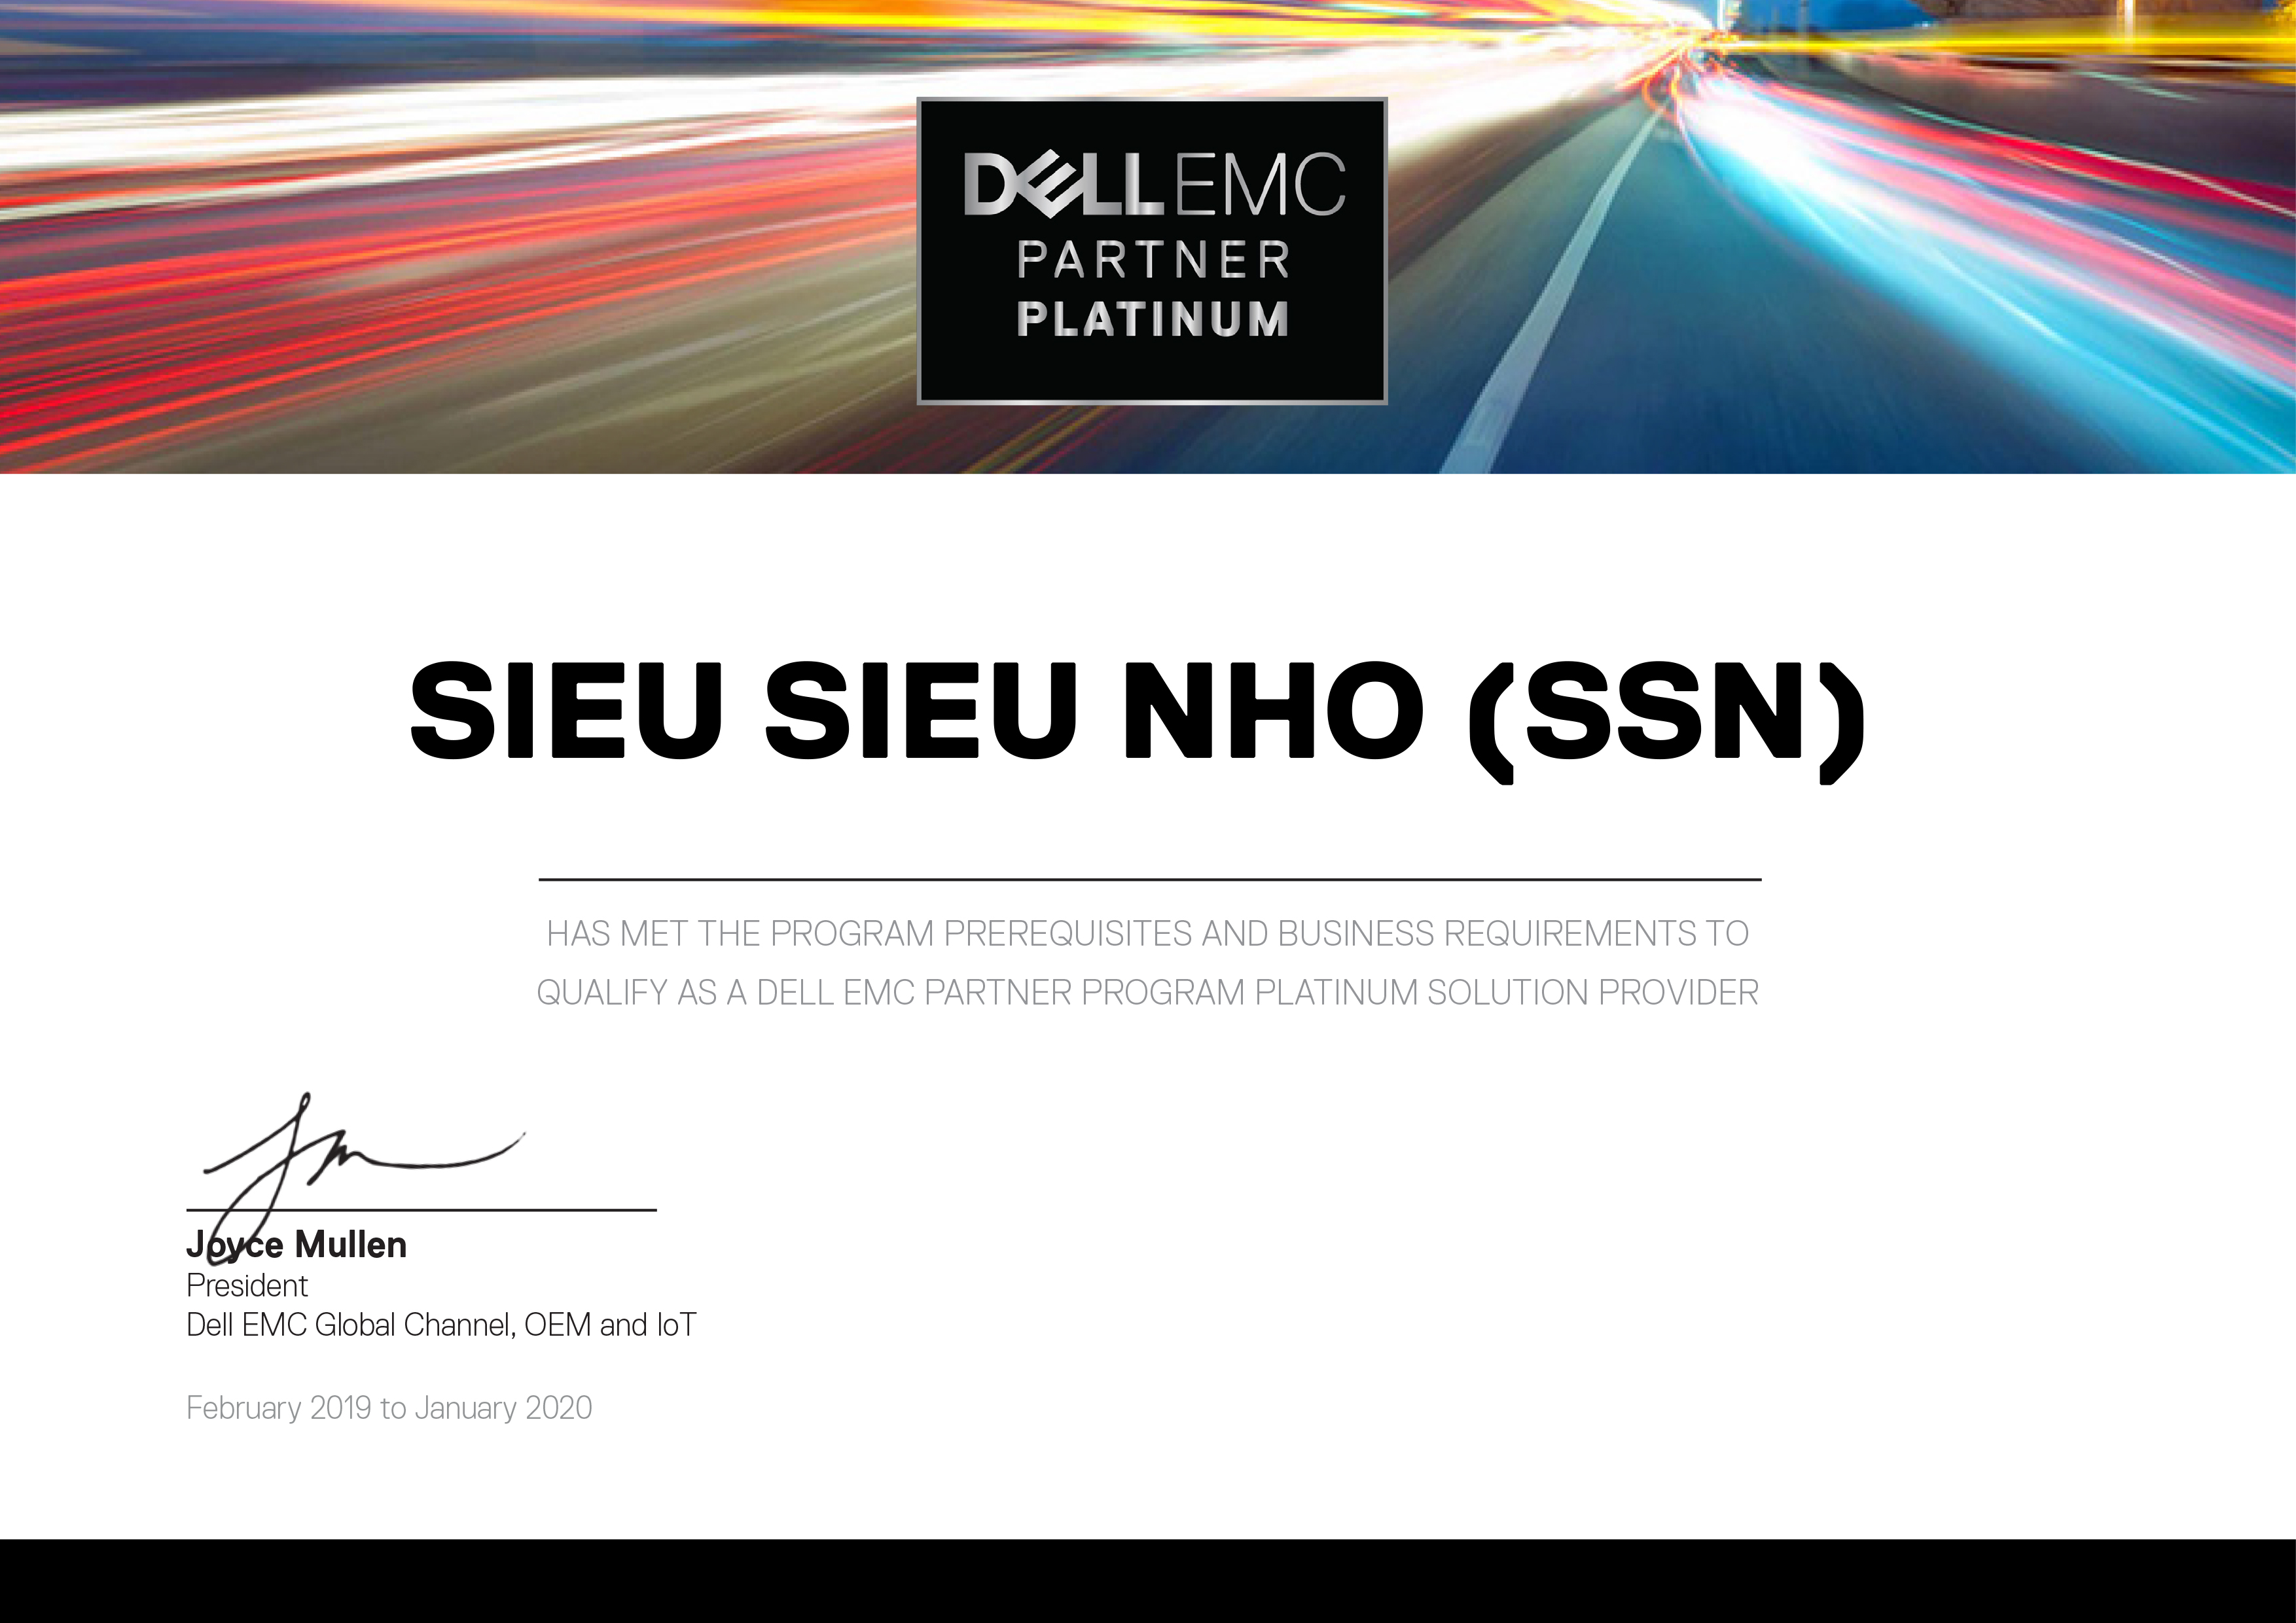 GCN DELL EMC PARTNER PLATINUM